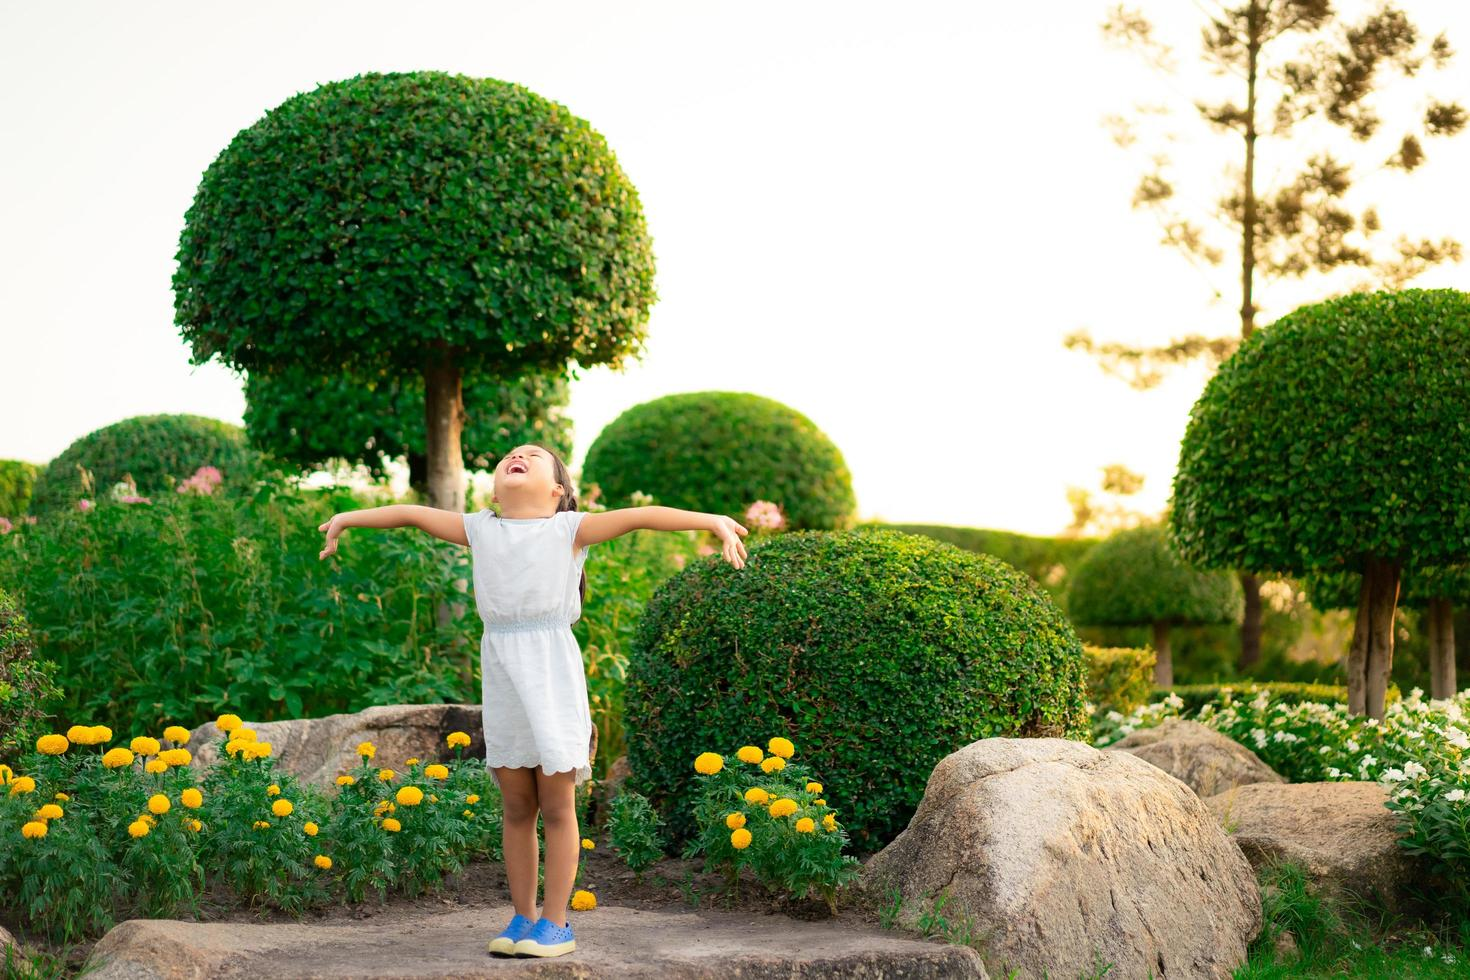 Young Asian girl with outstretched arms photo